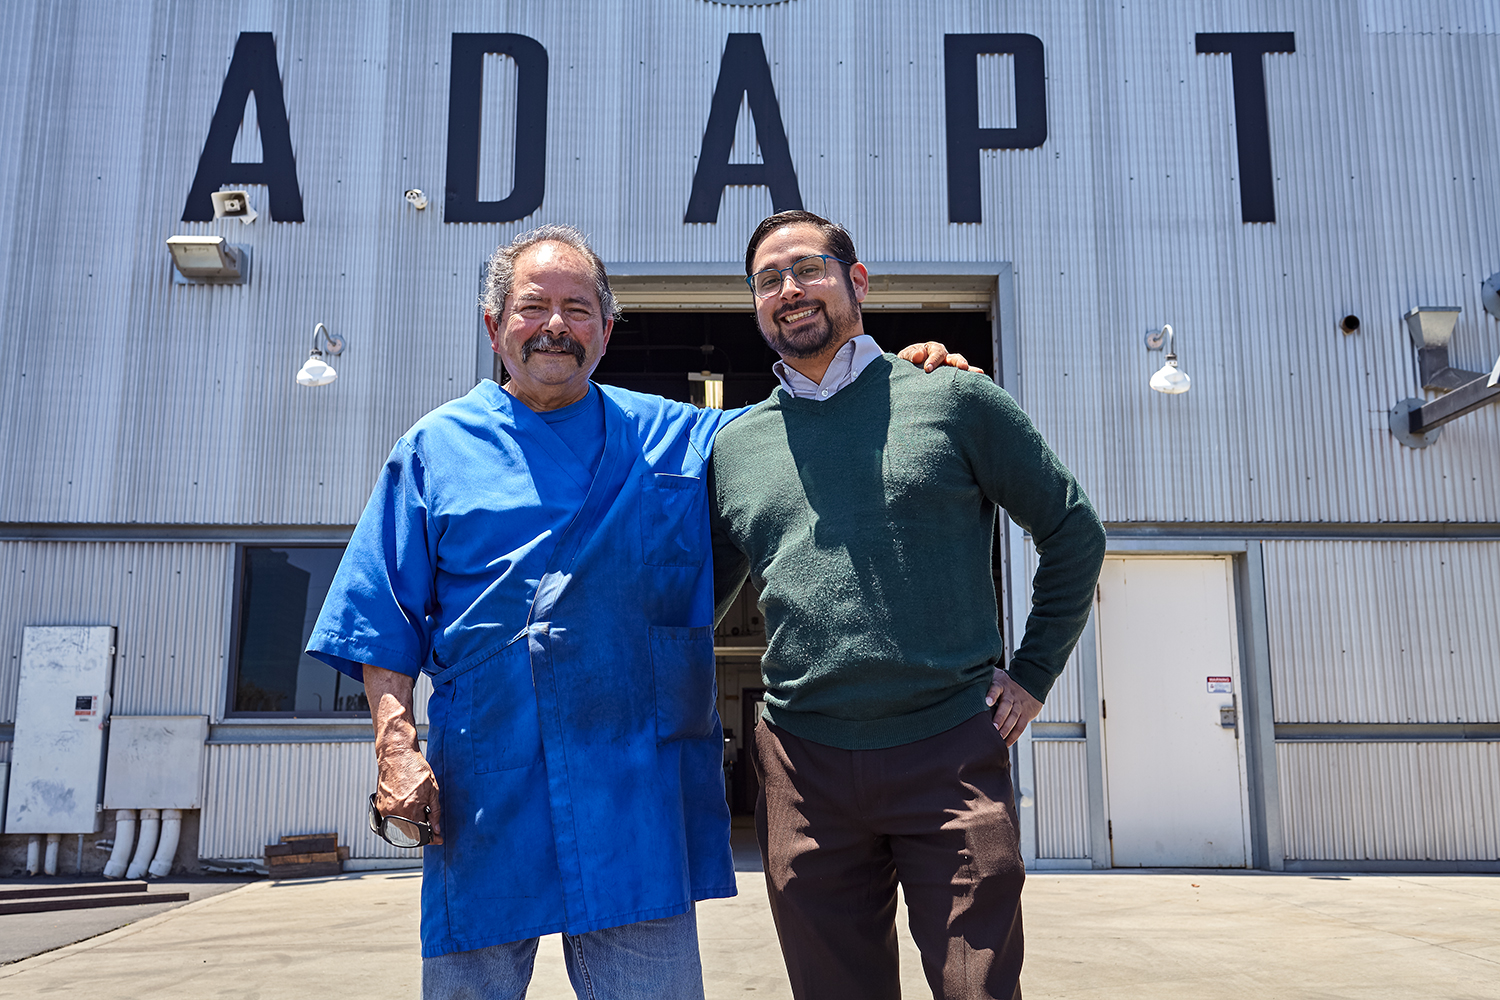 My dad (Manuel Escamilla senior) and myself in front of the machine shop where we worked together.